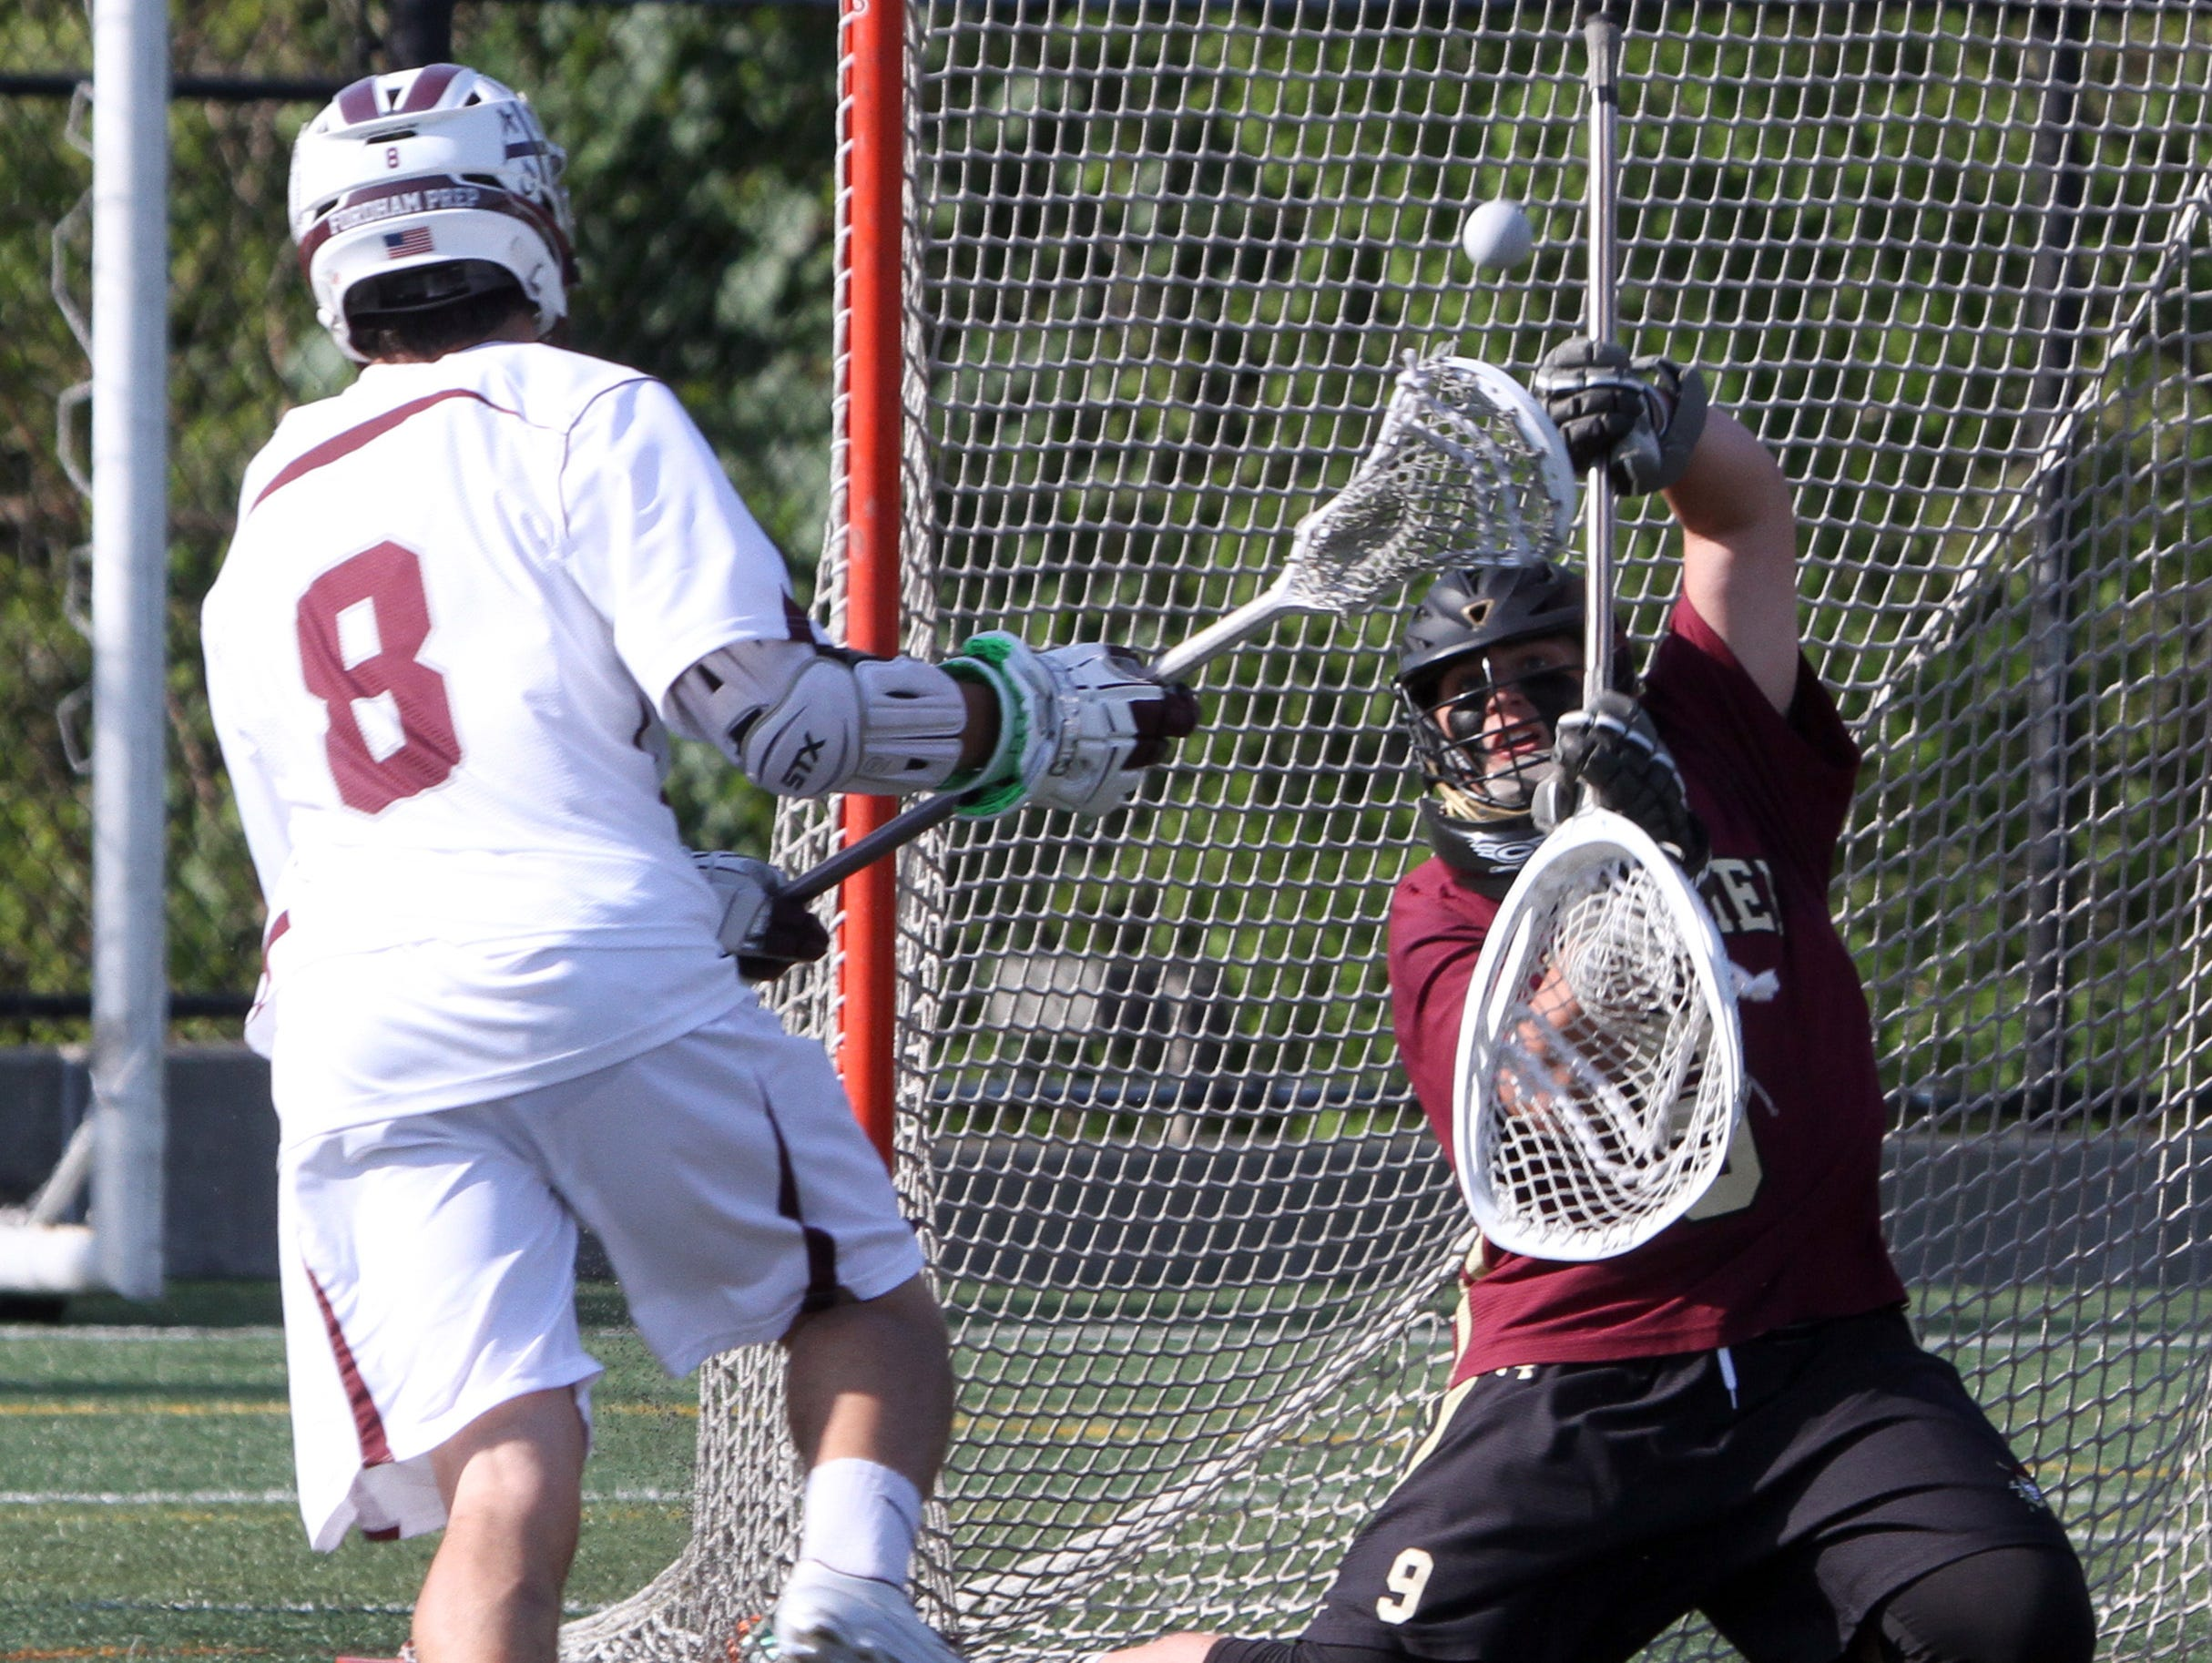 Iona Prep goalie Charlie McAllister deflects a shot by Fordham Prep's Andrew Abbattista during the CHSAA AA City Championship lacrosse game at Fordham Prep May 12, 2016. Iona Prep came from behind to defeat Fordham Prep 7-6.